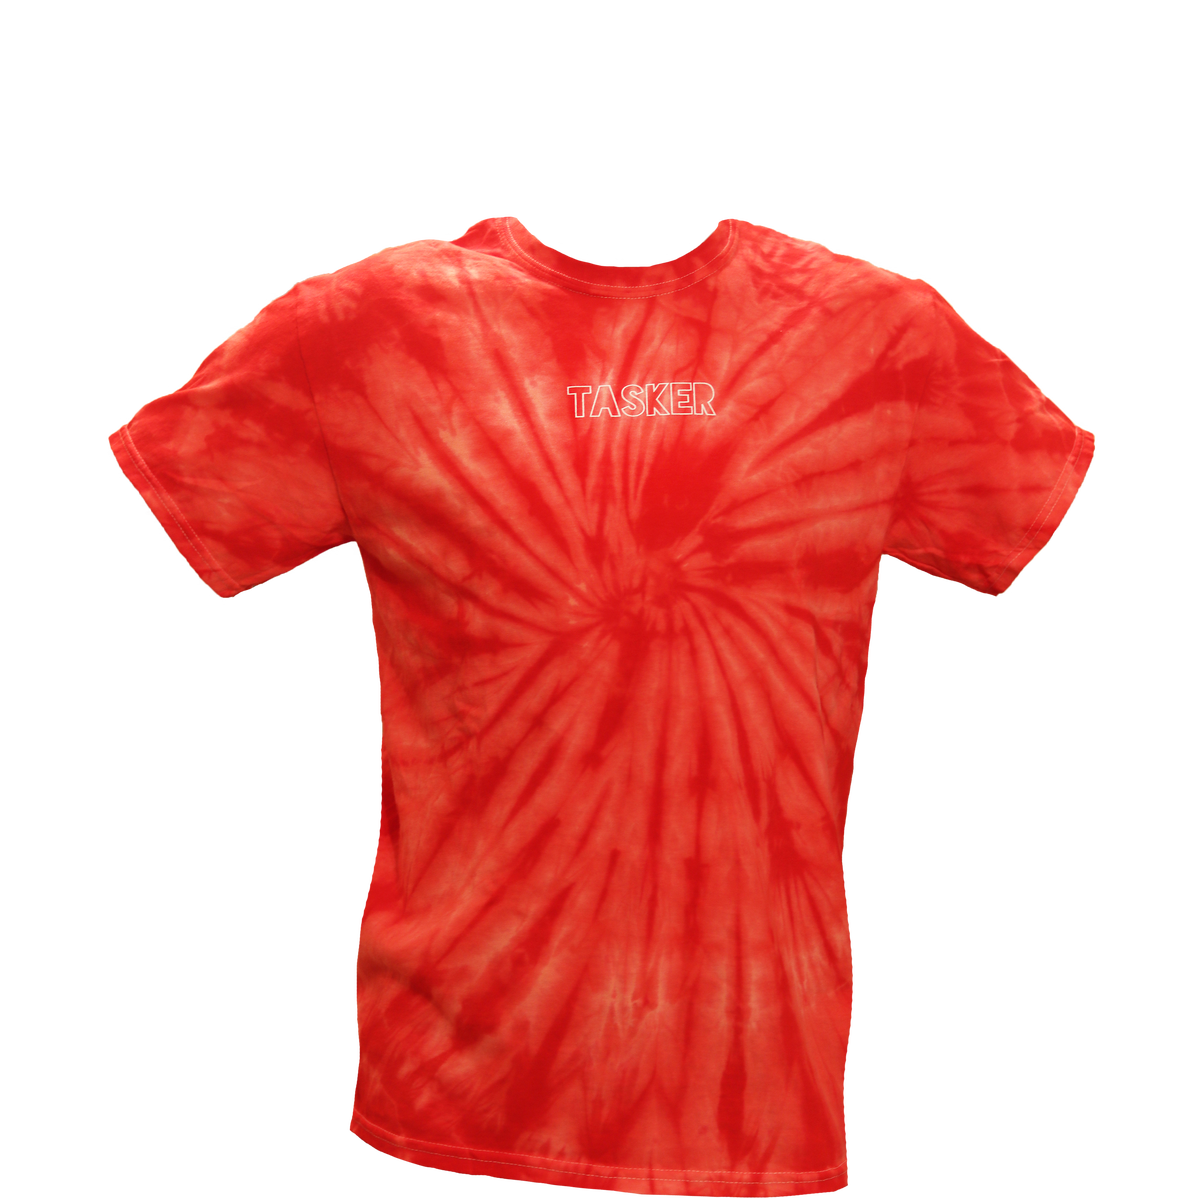 Image of Red Tie Dye T-Shirt